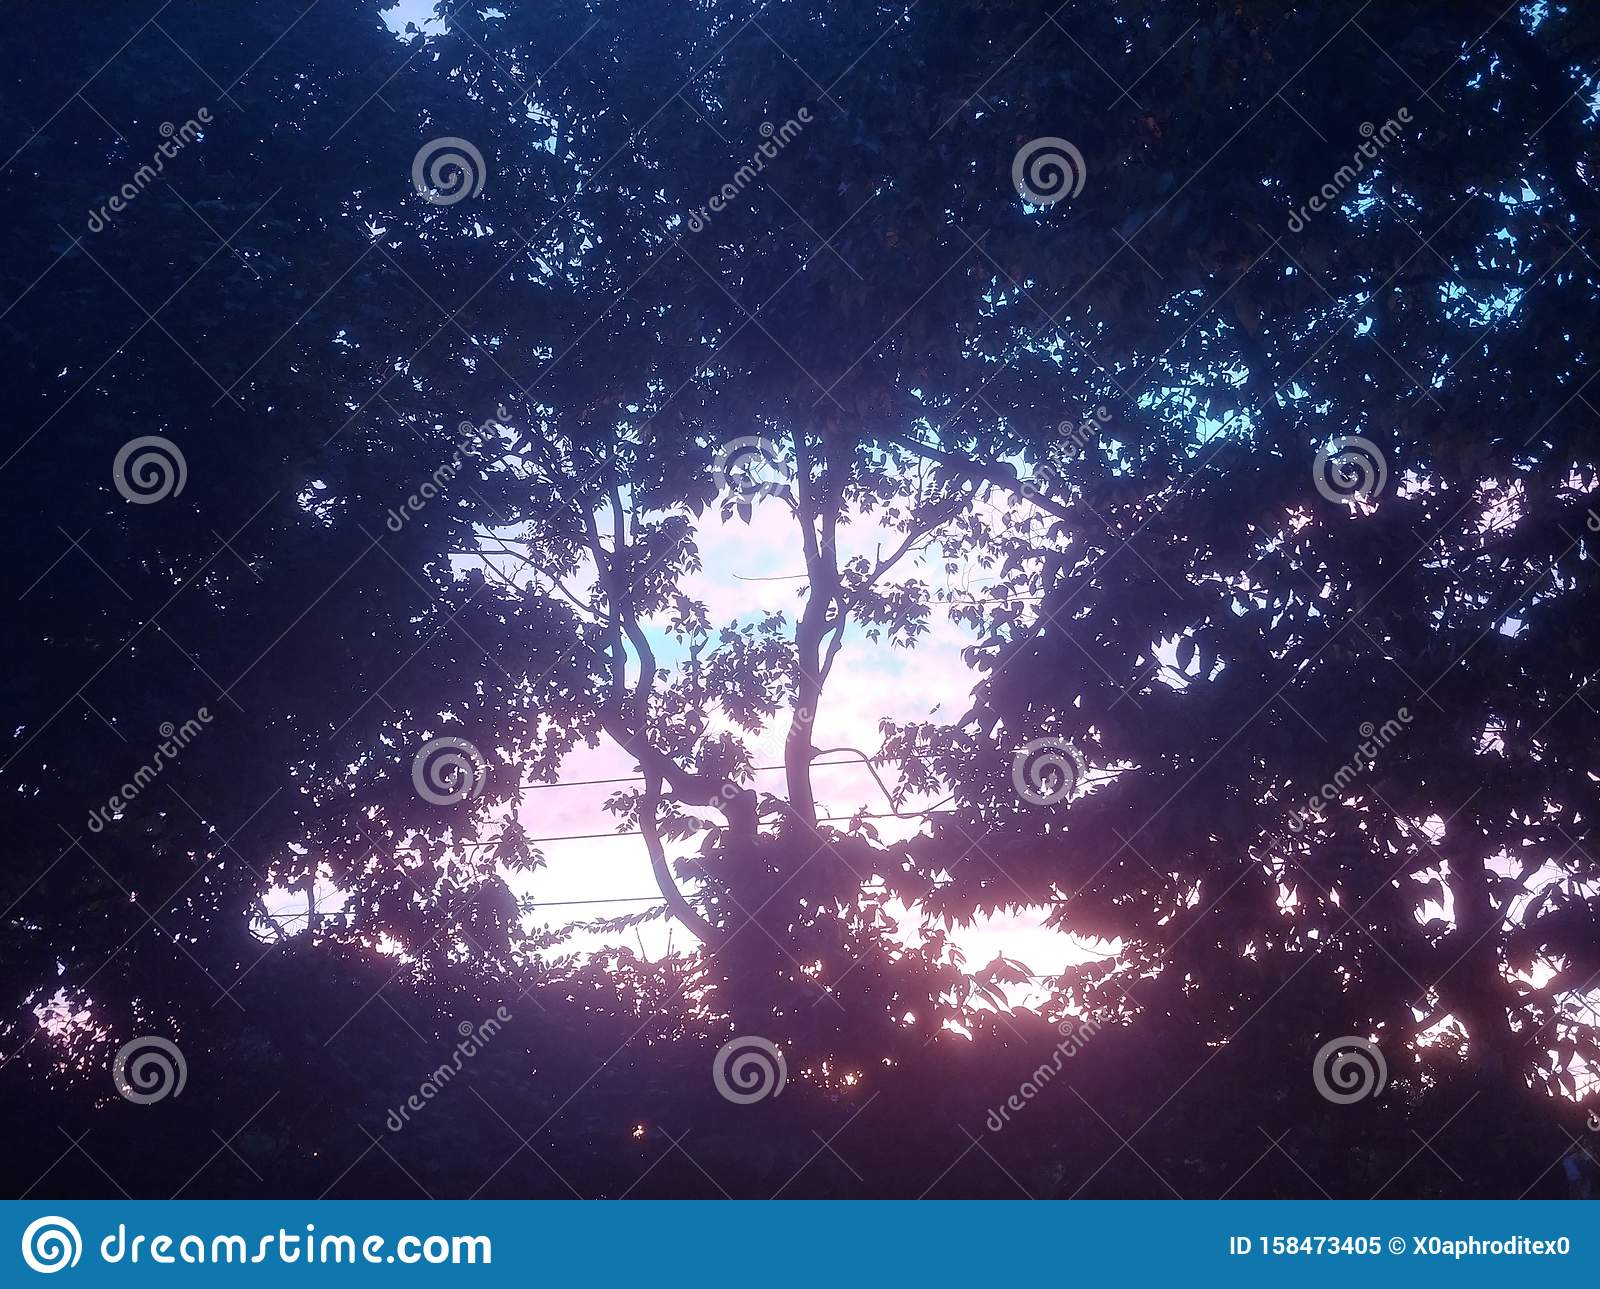 Aesthetic Colorful Tree Cotton Candy Sky Stock Image Image Of Tree Aesthetic 158473405